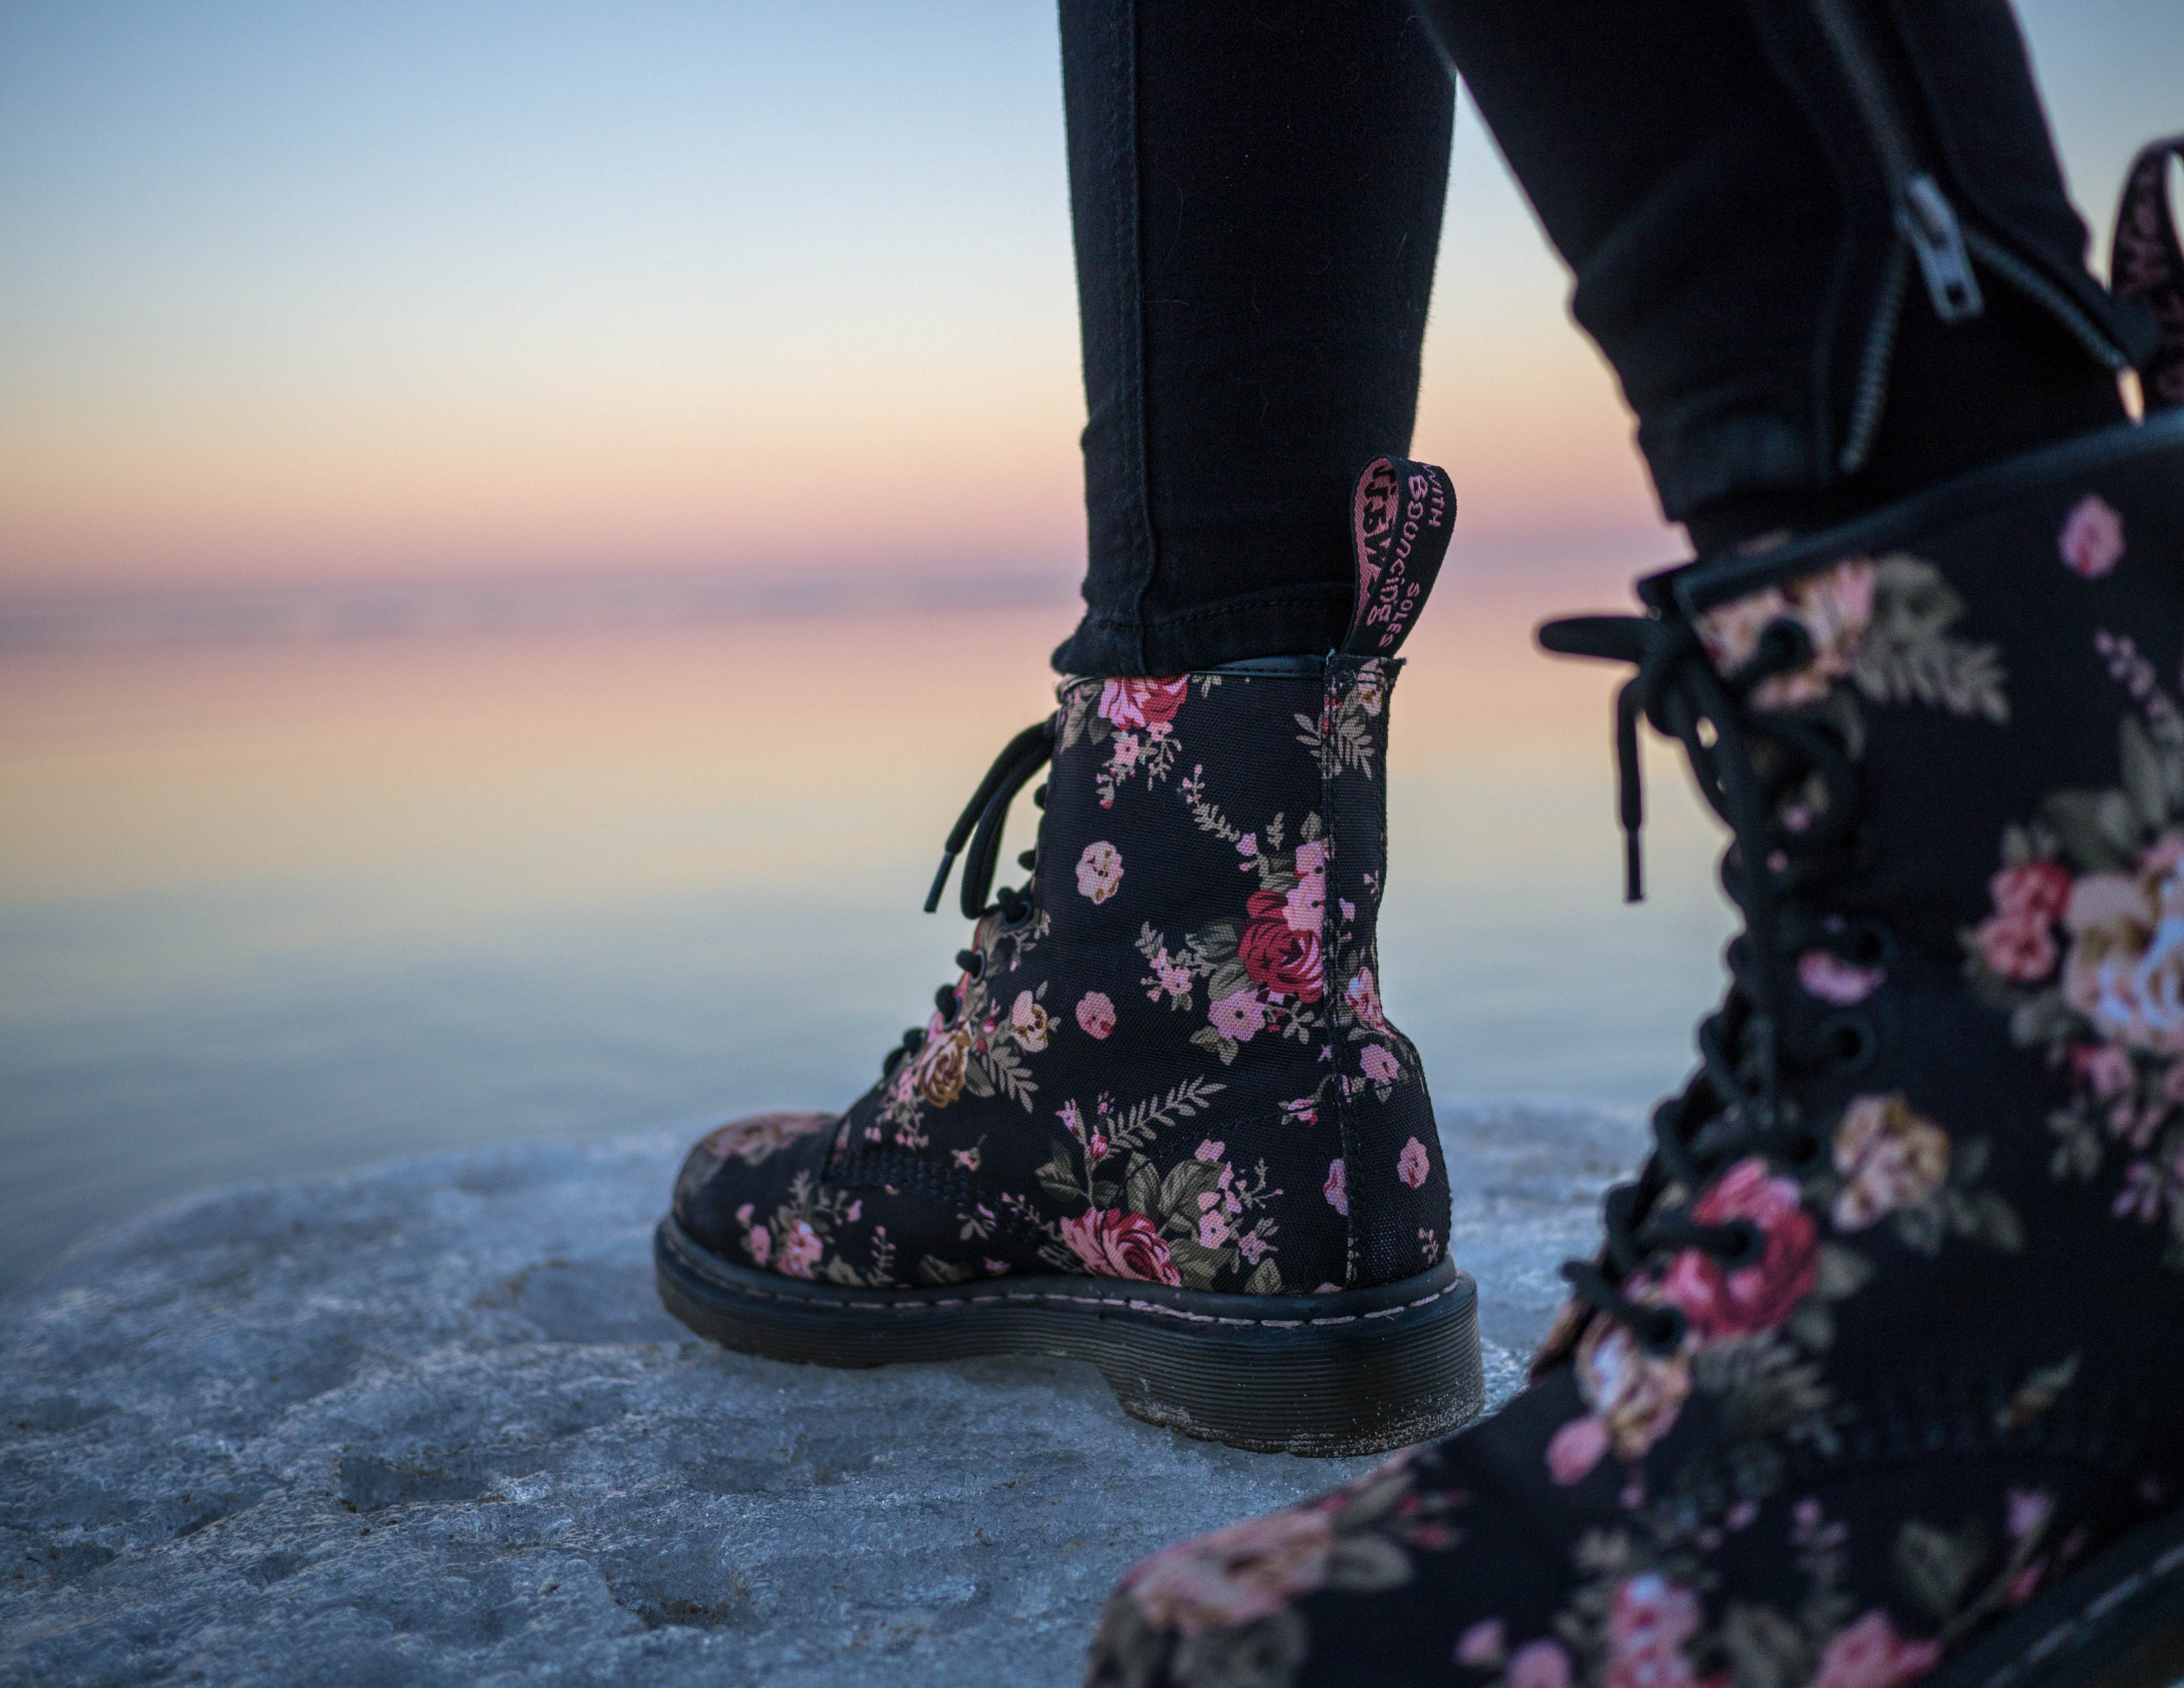 person wearing black and pink floral boots